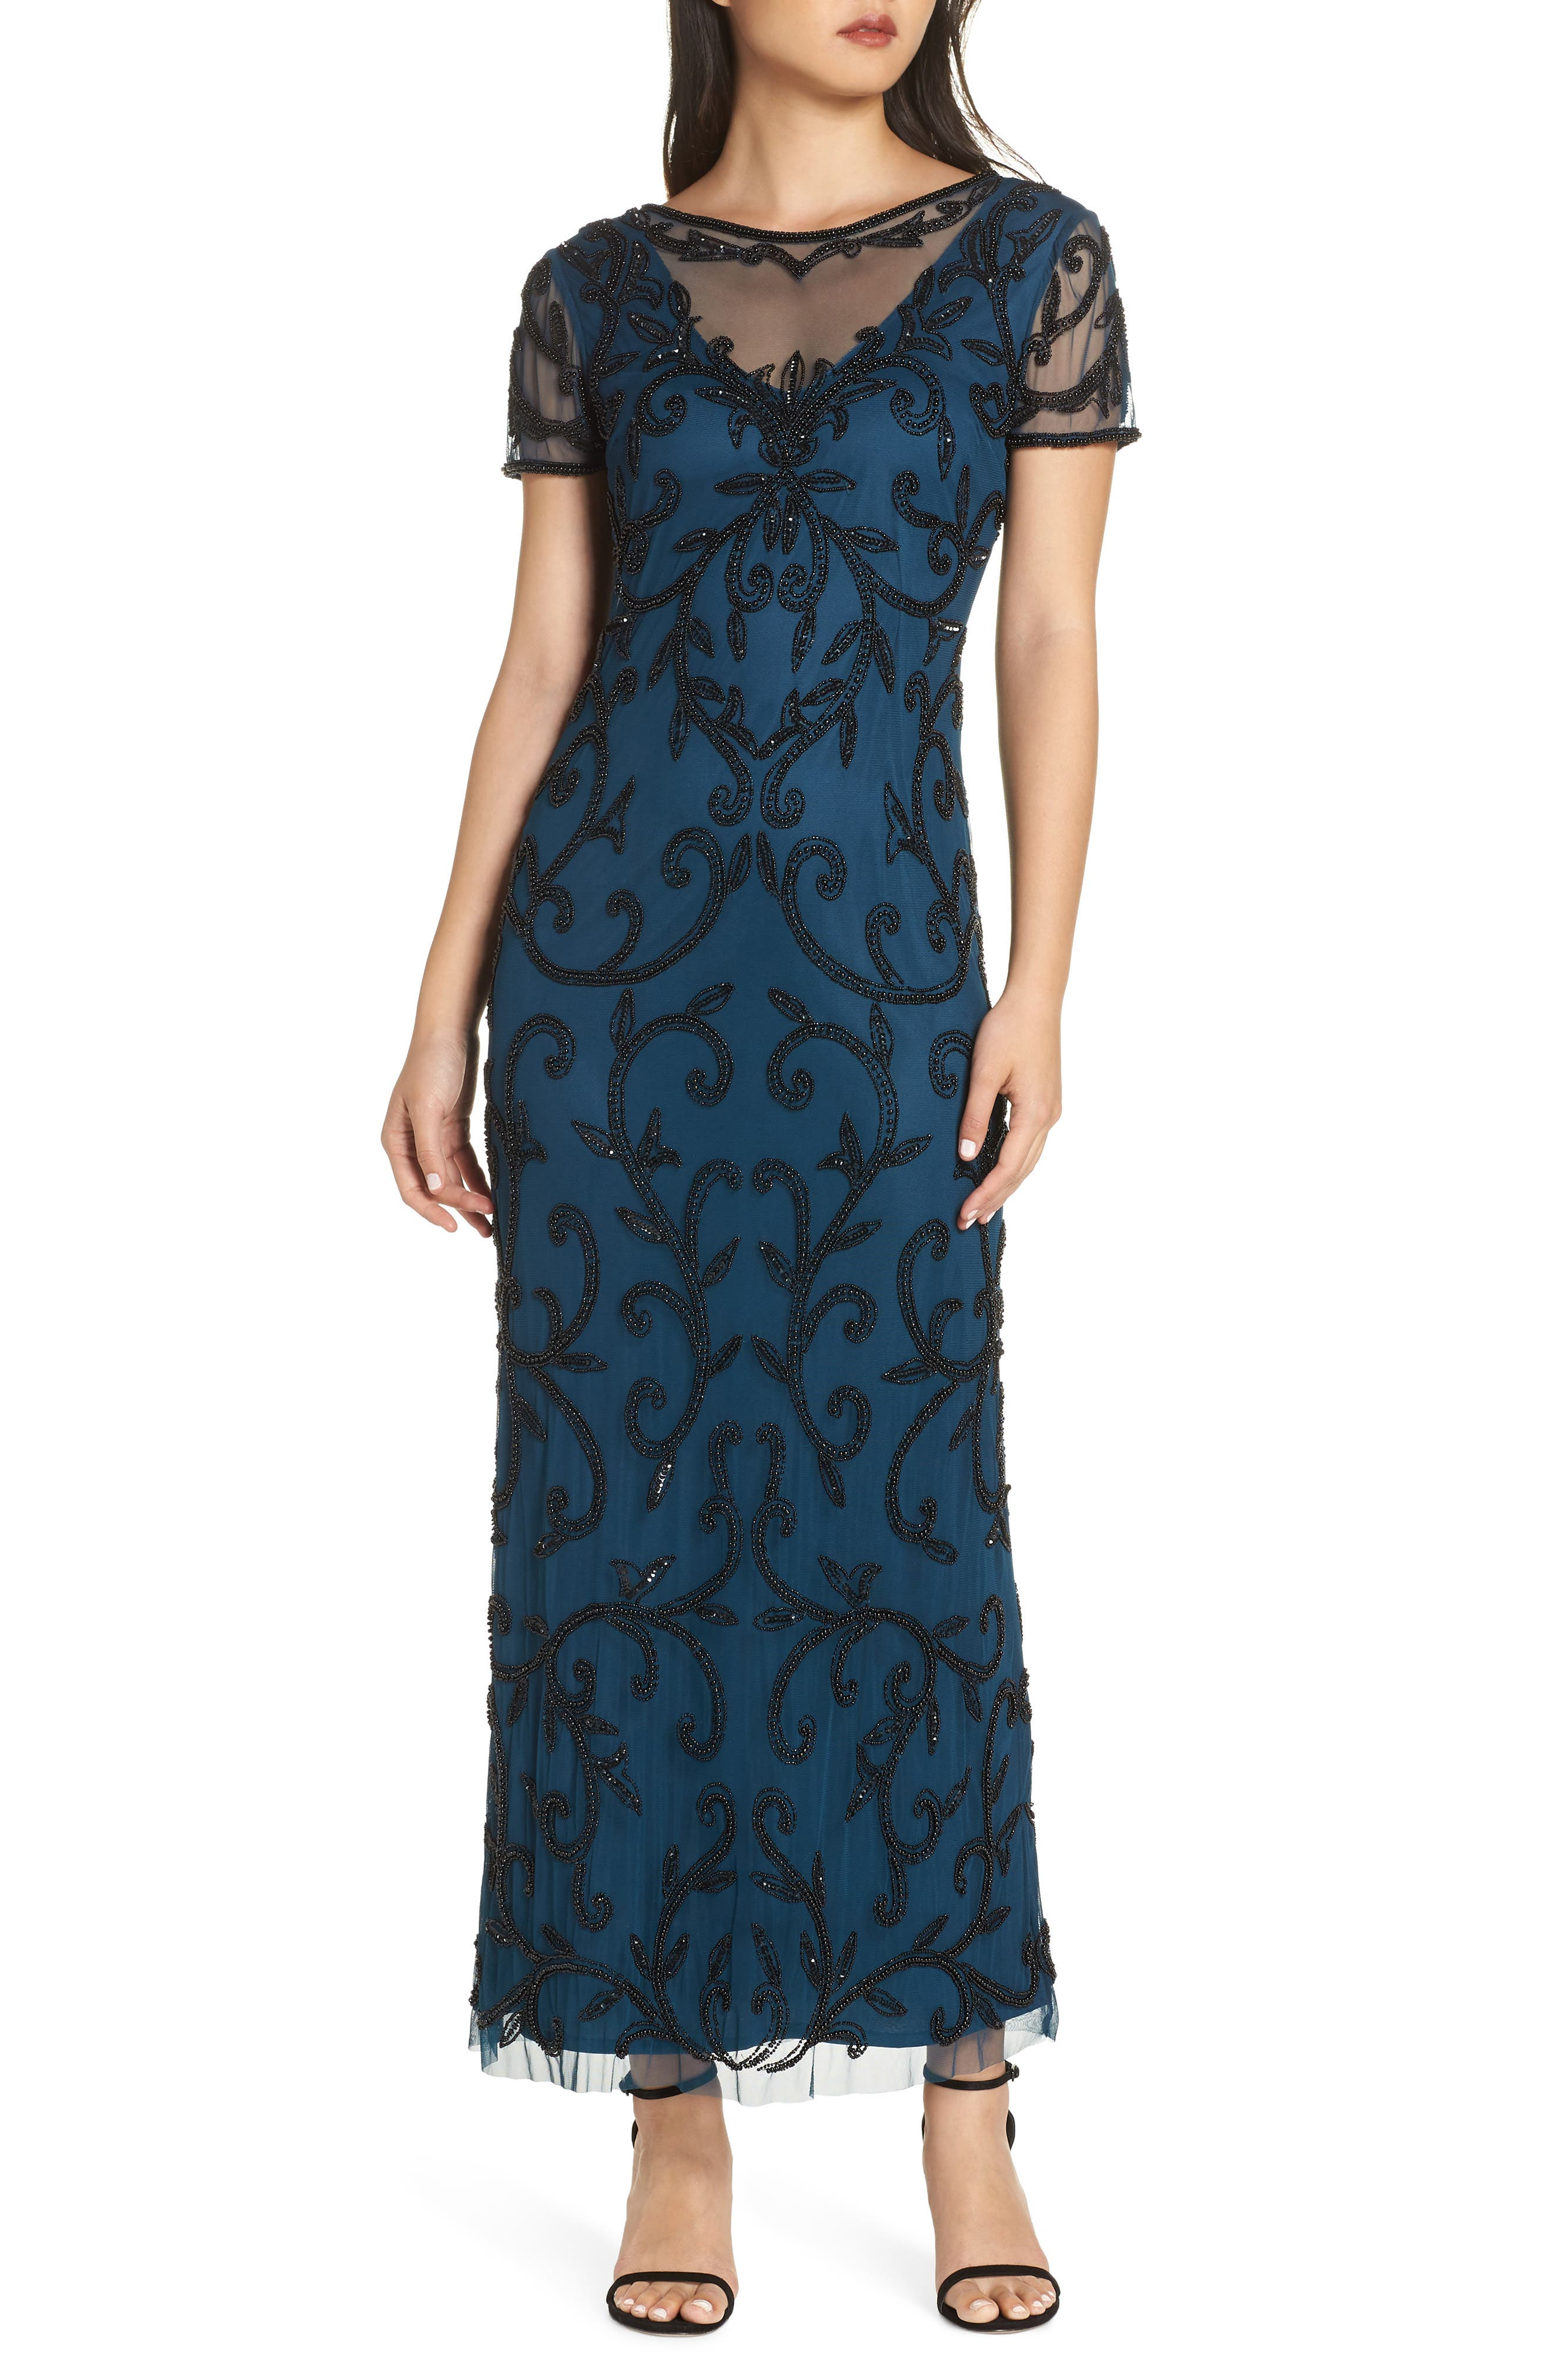 Downton Abbey Inspired Dresses Womens Pisarro Nights Beaded Illusion Gown Size 6 - Blue $142.80 AT vintagedancer.com